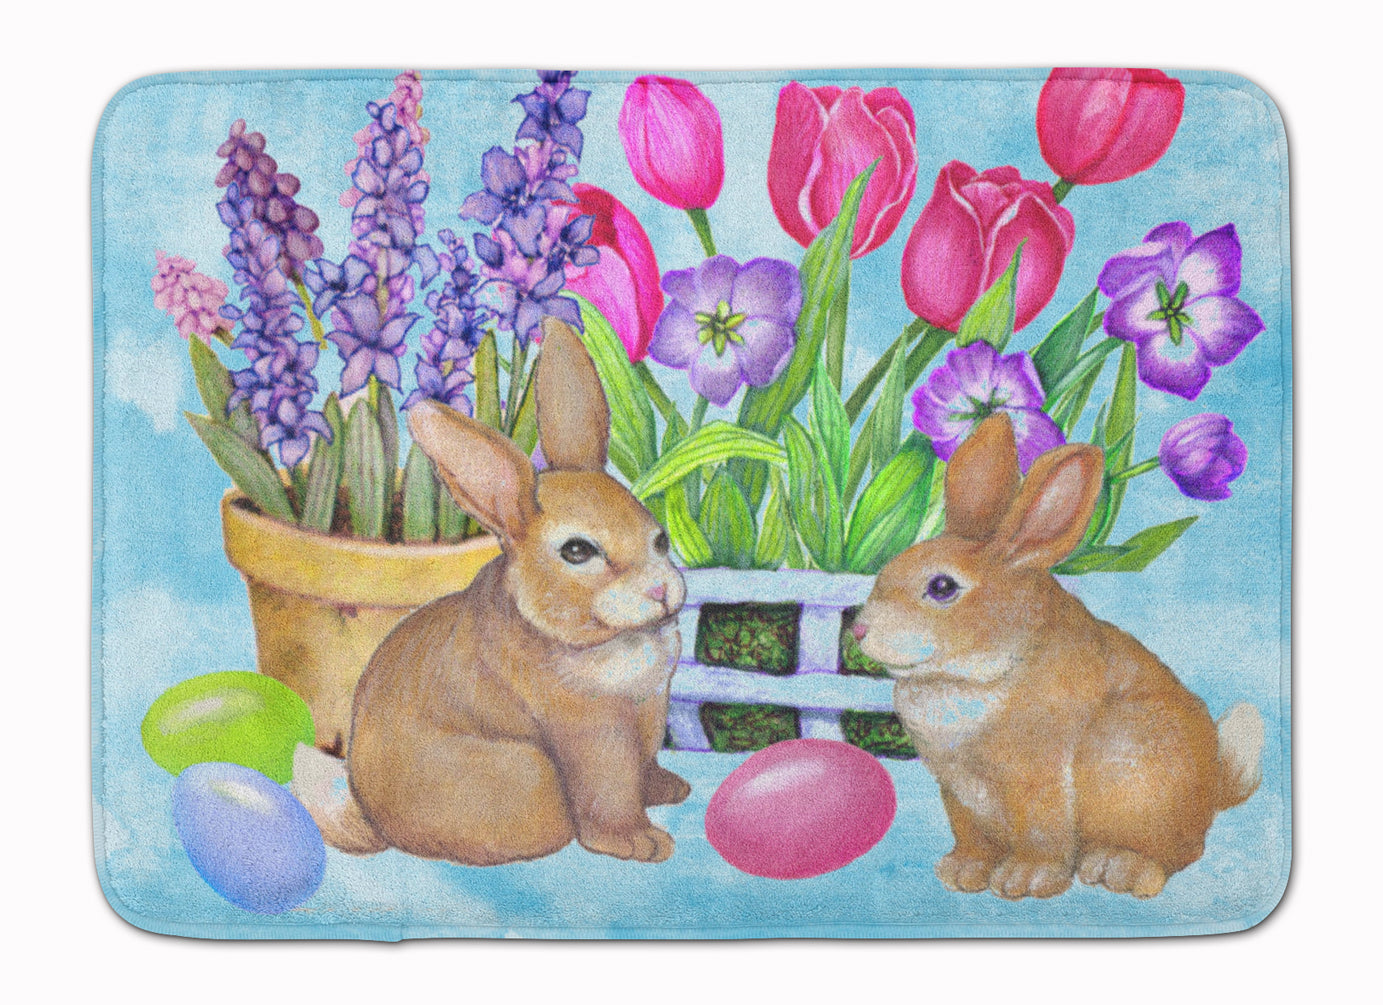 New Beginnings Easter Rabbit Machine Washable Memory Foam Mat PJC1066RUG by Caroline's Treasures